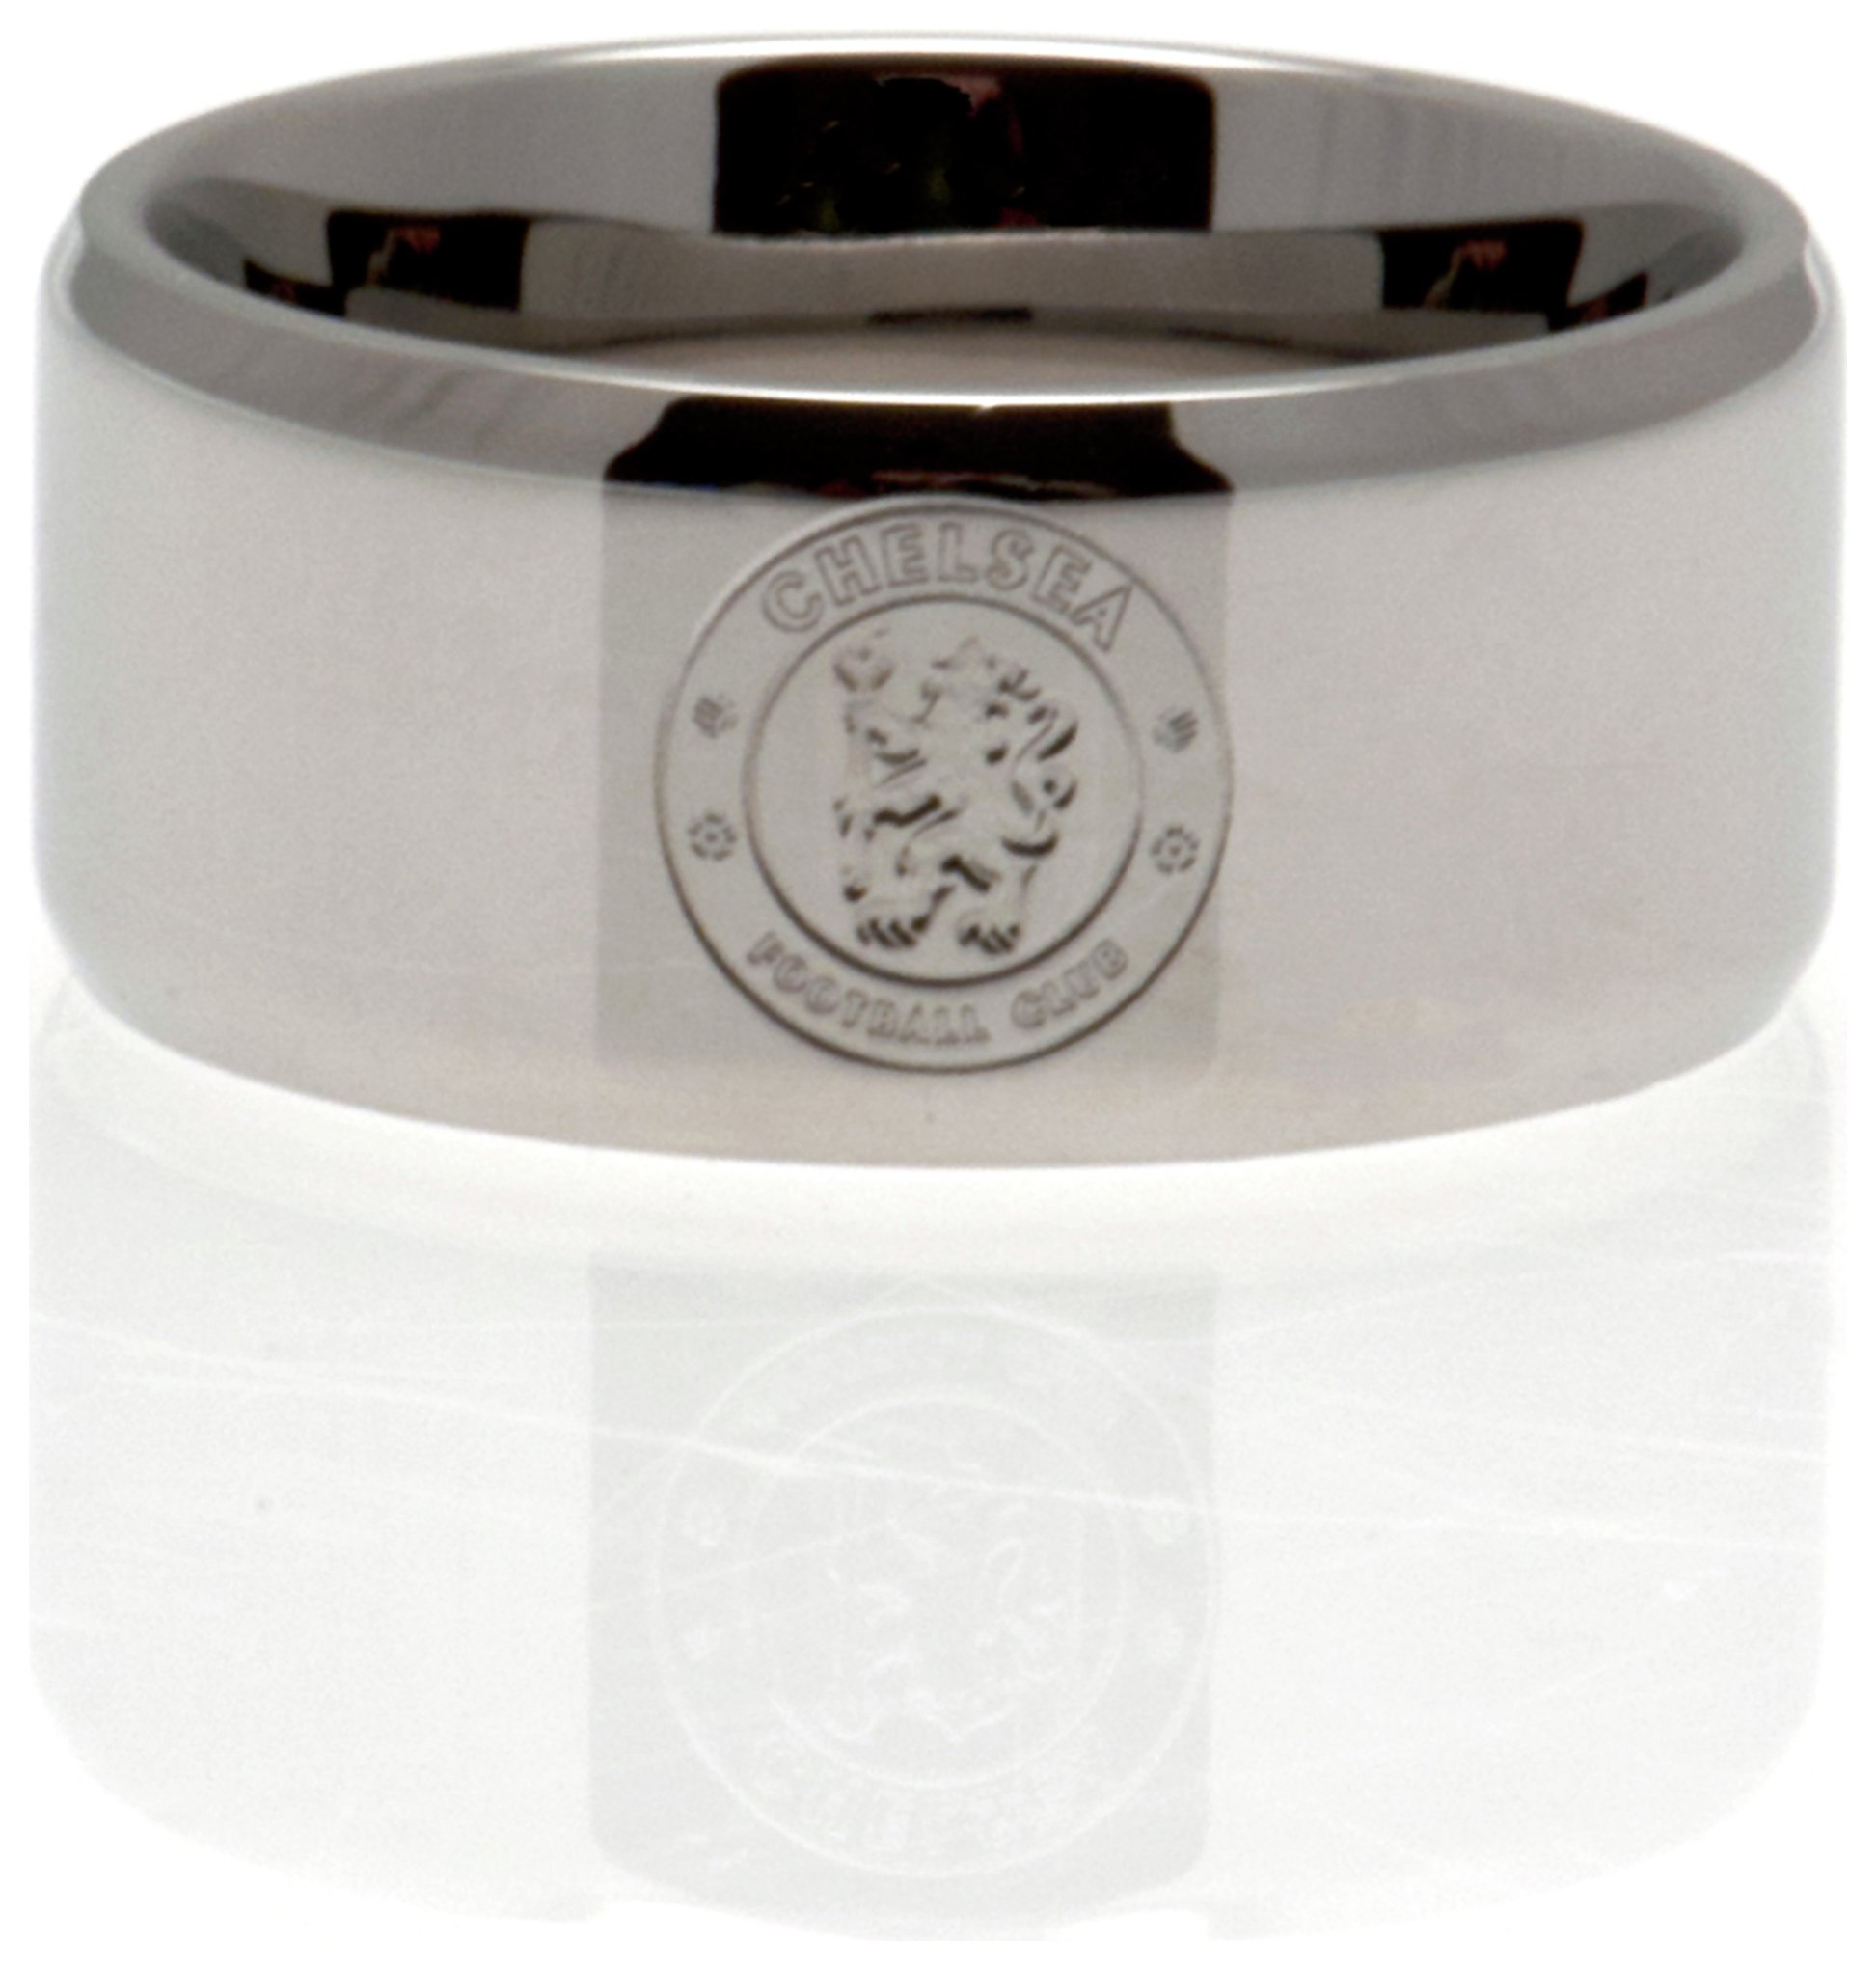 Stainless Steel Chelsea Ring - Size R.